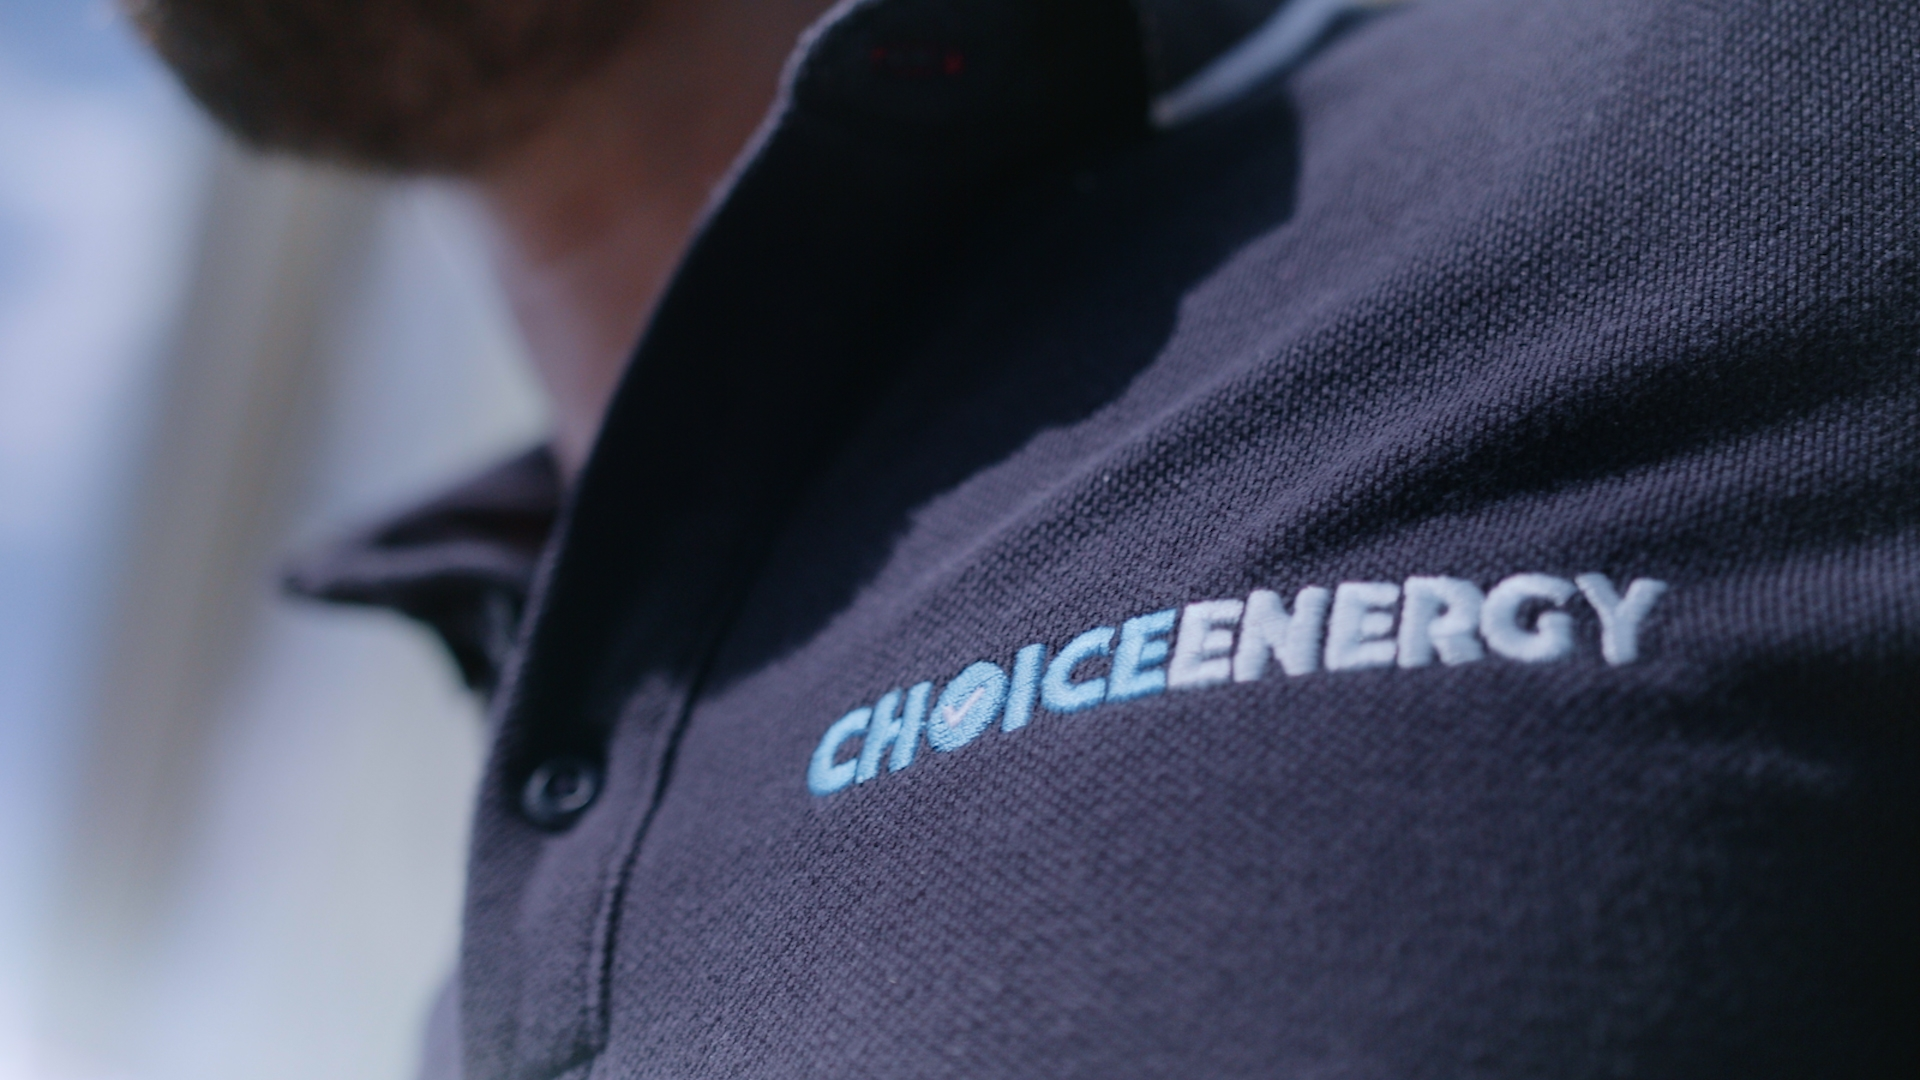 Choice Energy TShirt Close Up_Hi Res